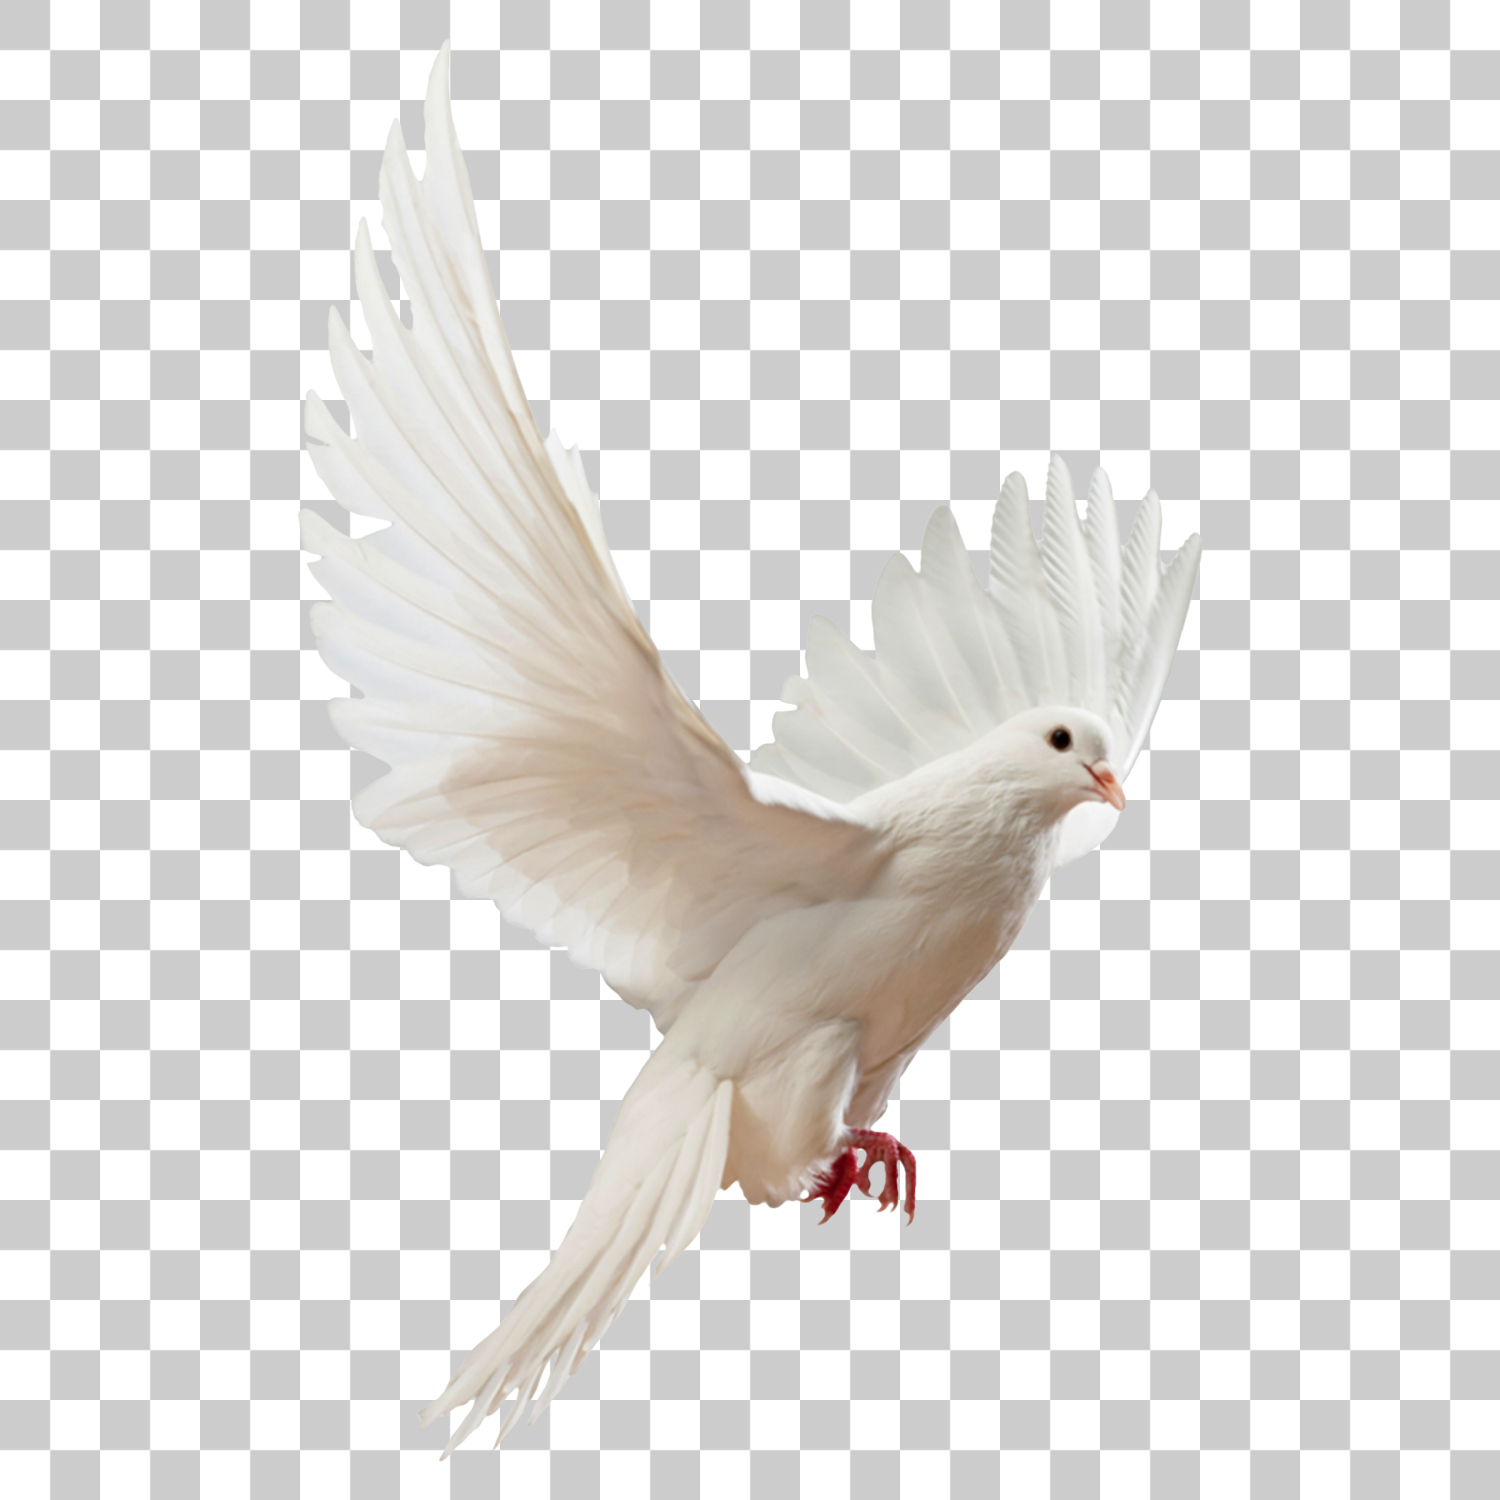 Dove Bird Png Image With Transparent Background Dove Images Photoshop Backgrounds Free Photoshop Backgrounds